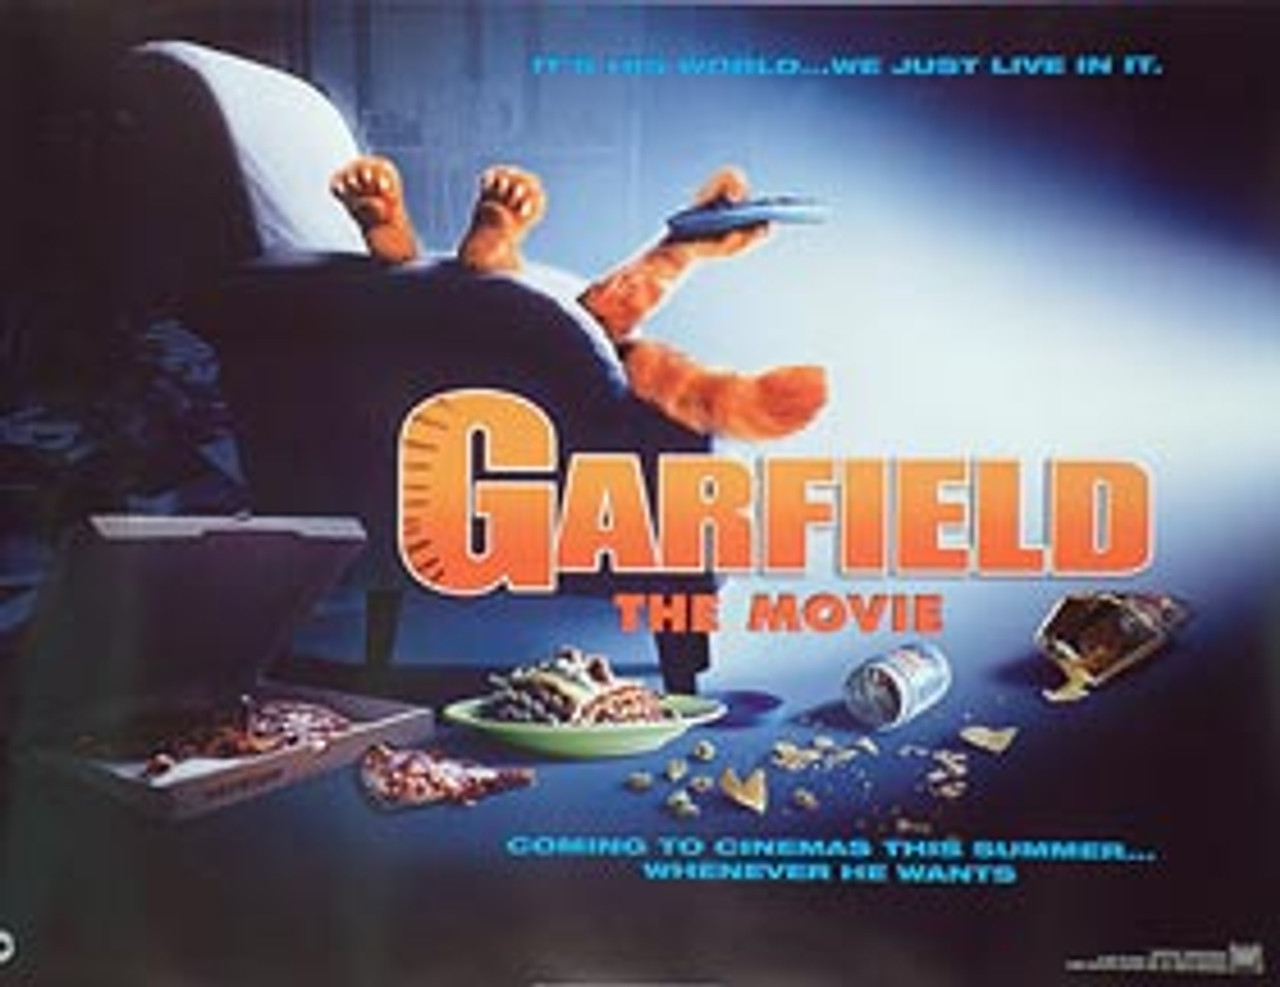 Garfield Advance Poster Buy Movie Posters At Starstills Com Ssg1137 788685